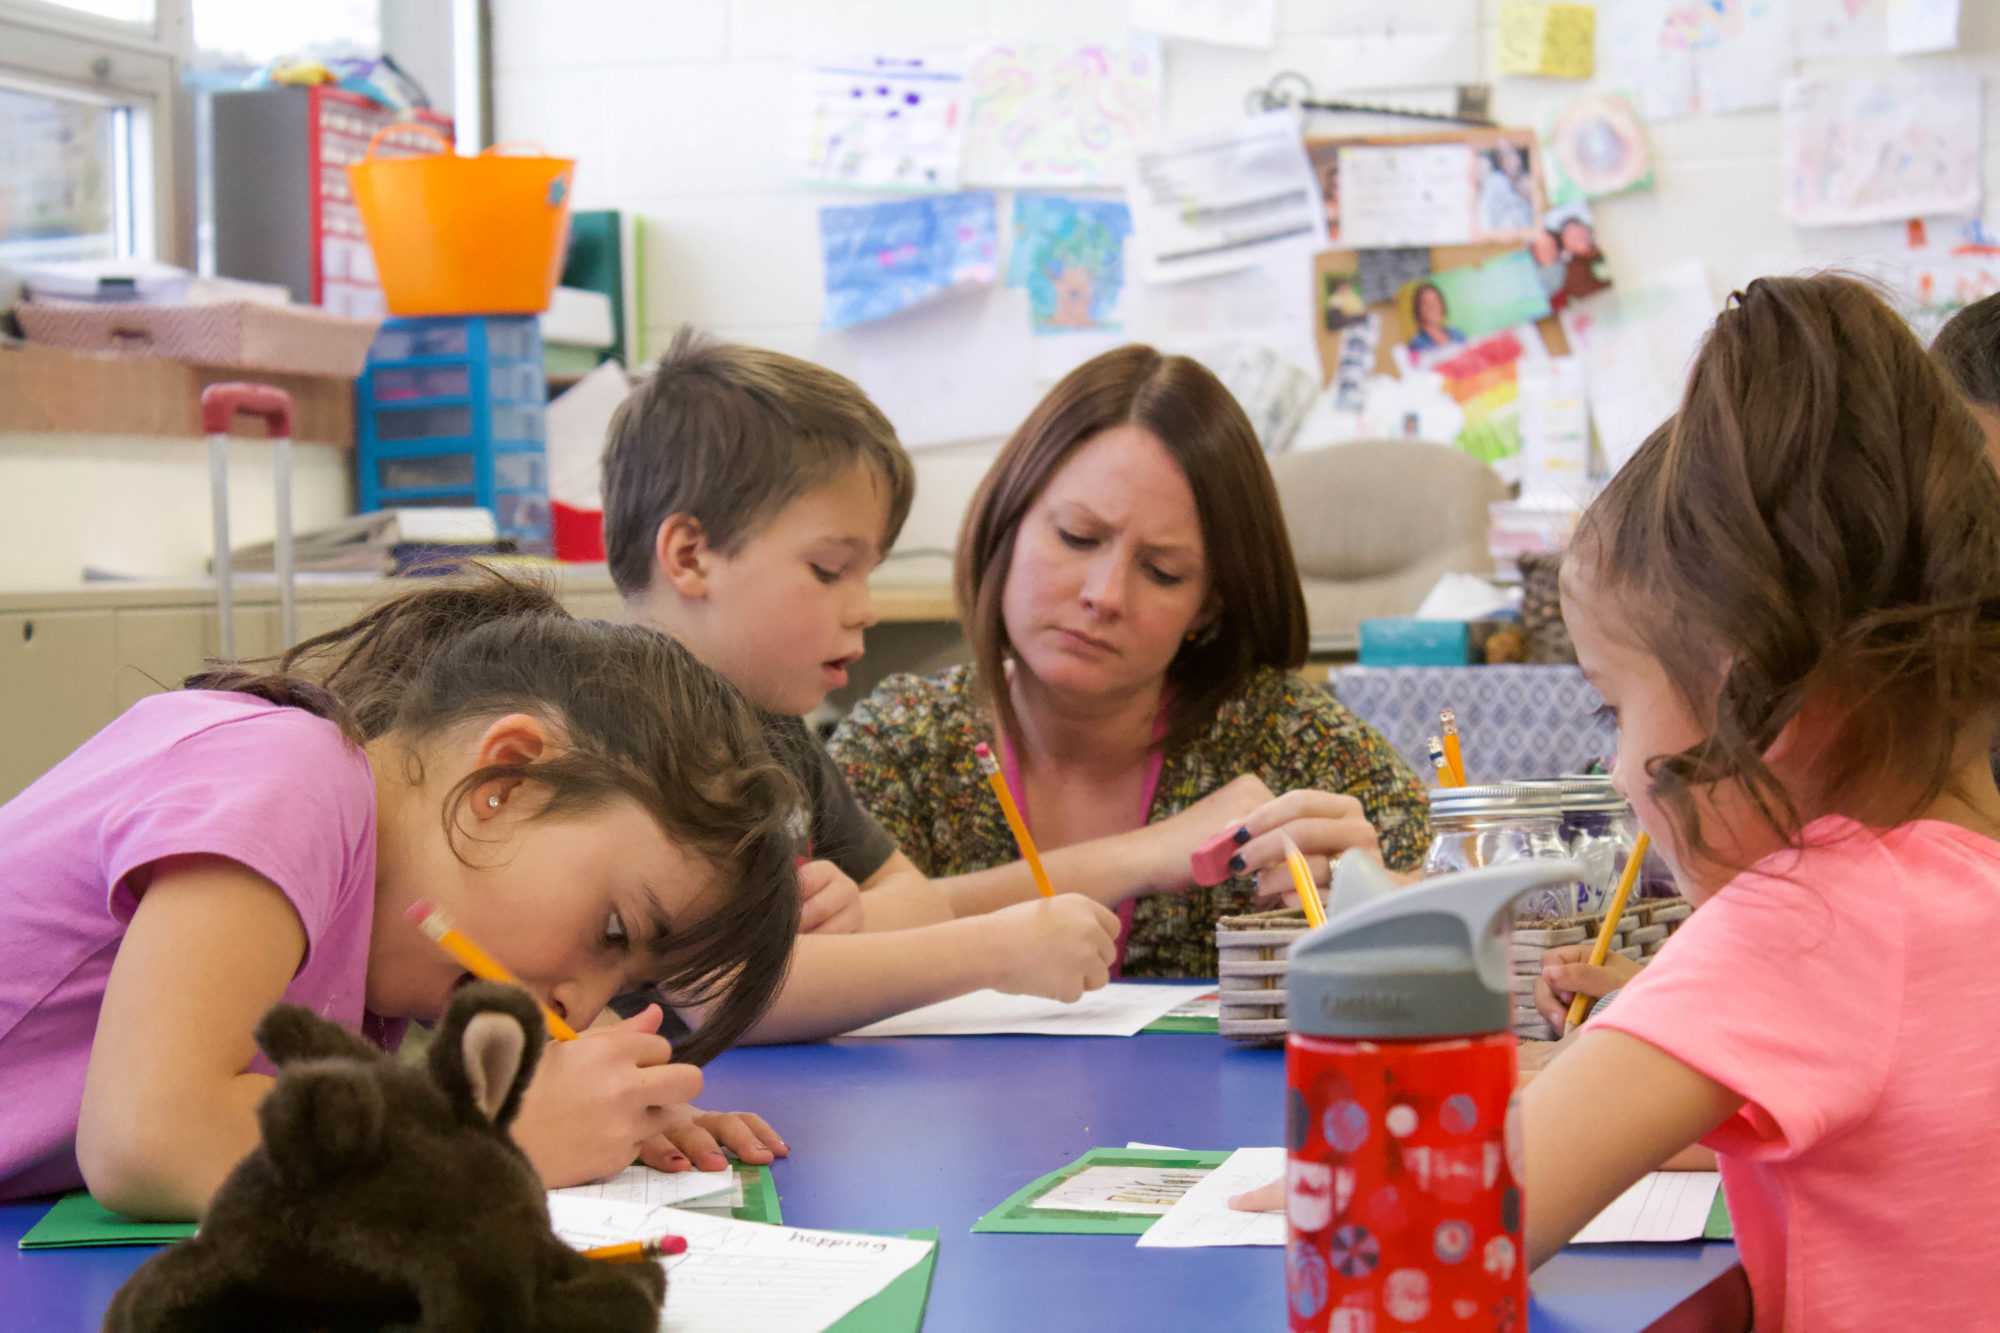 Ally Duncan, an elementary school teacher in Lake County, works with students on sentence structure. (Photo by Nic Garcia/Chalkbeat)